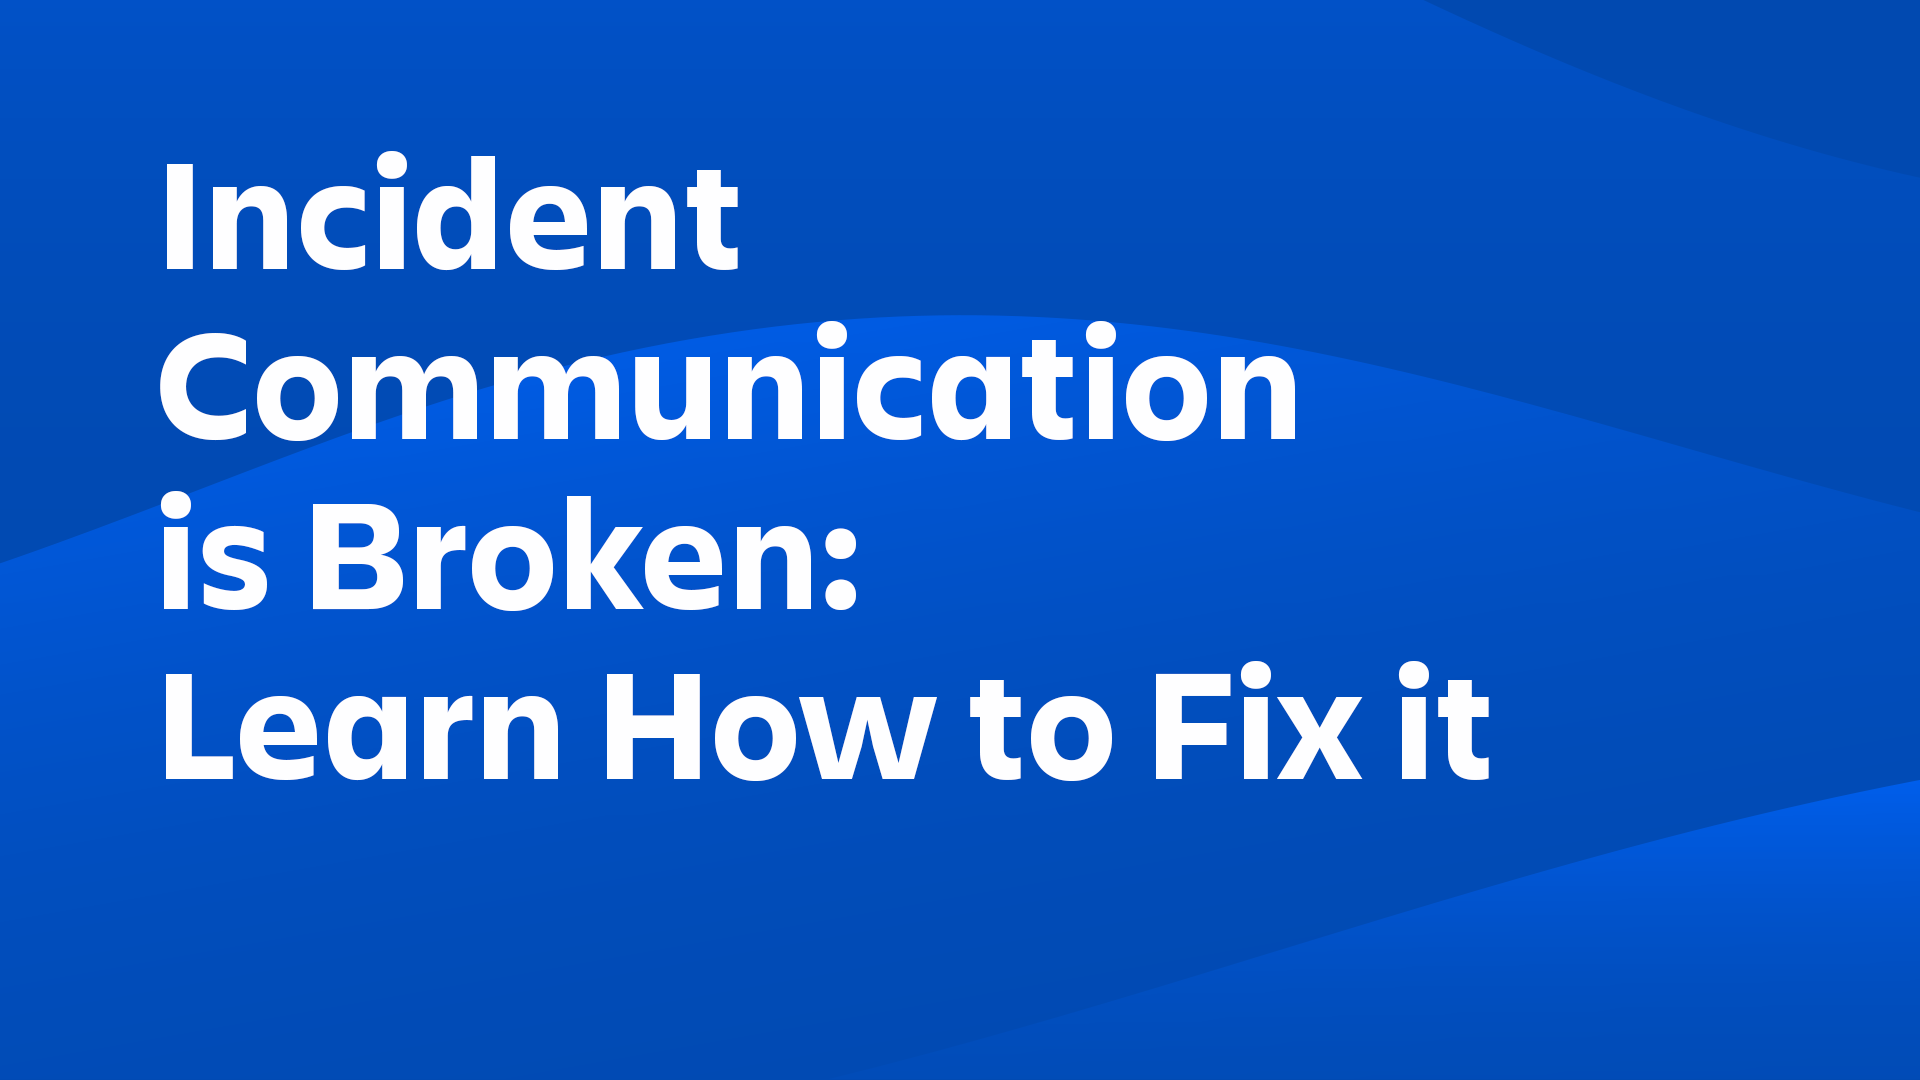 Incident Communication is Broken, Learn how to fix it